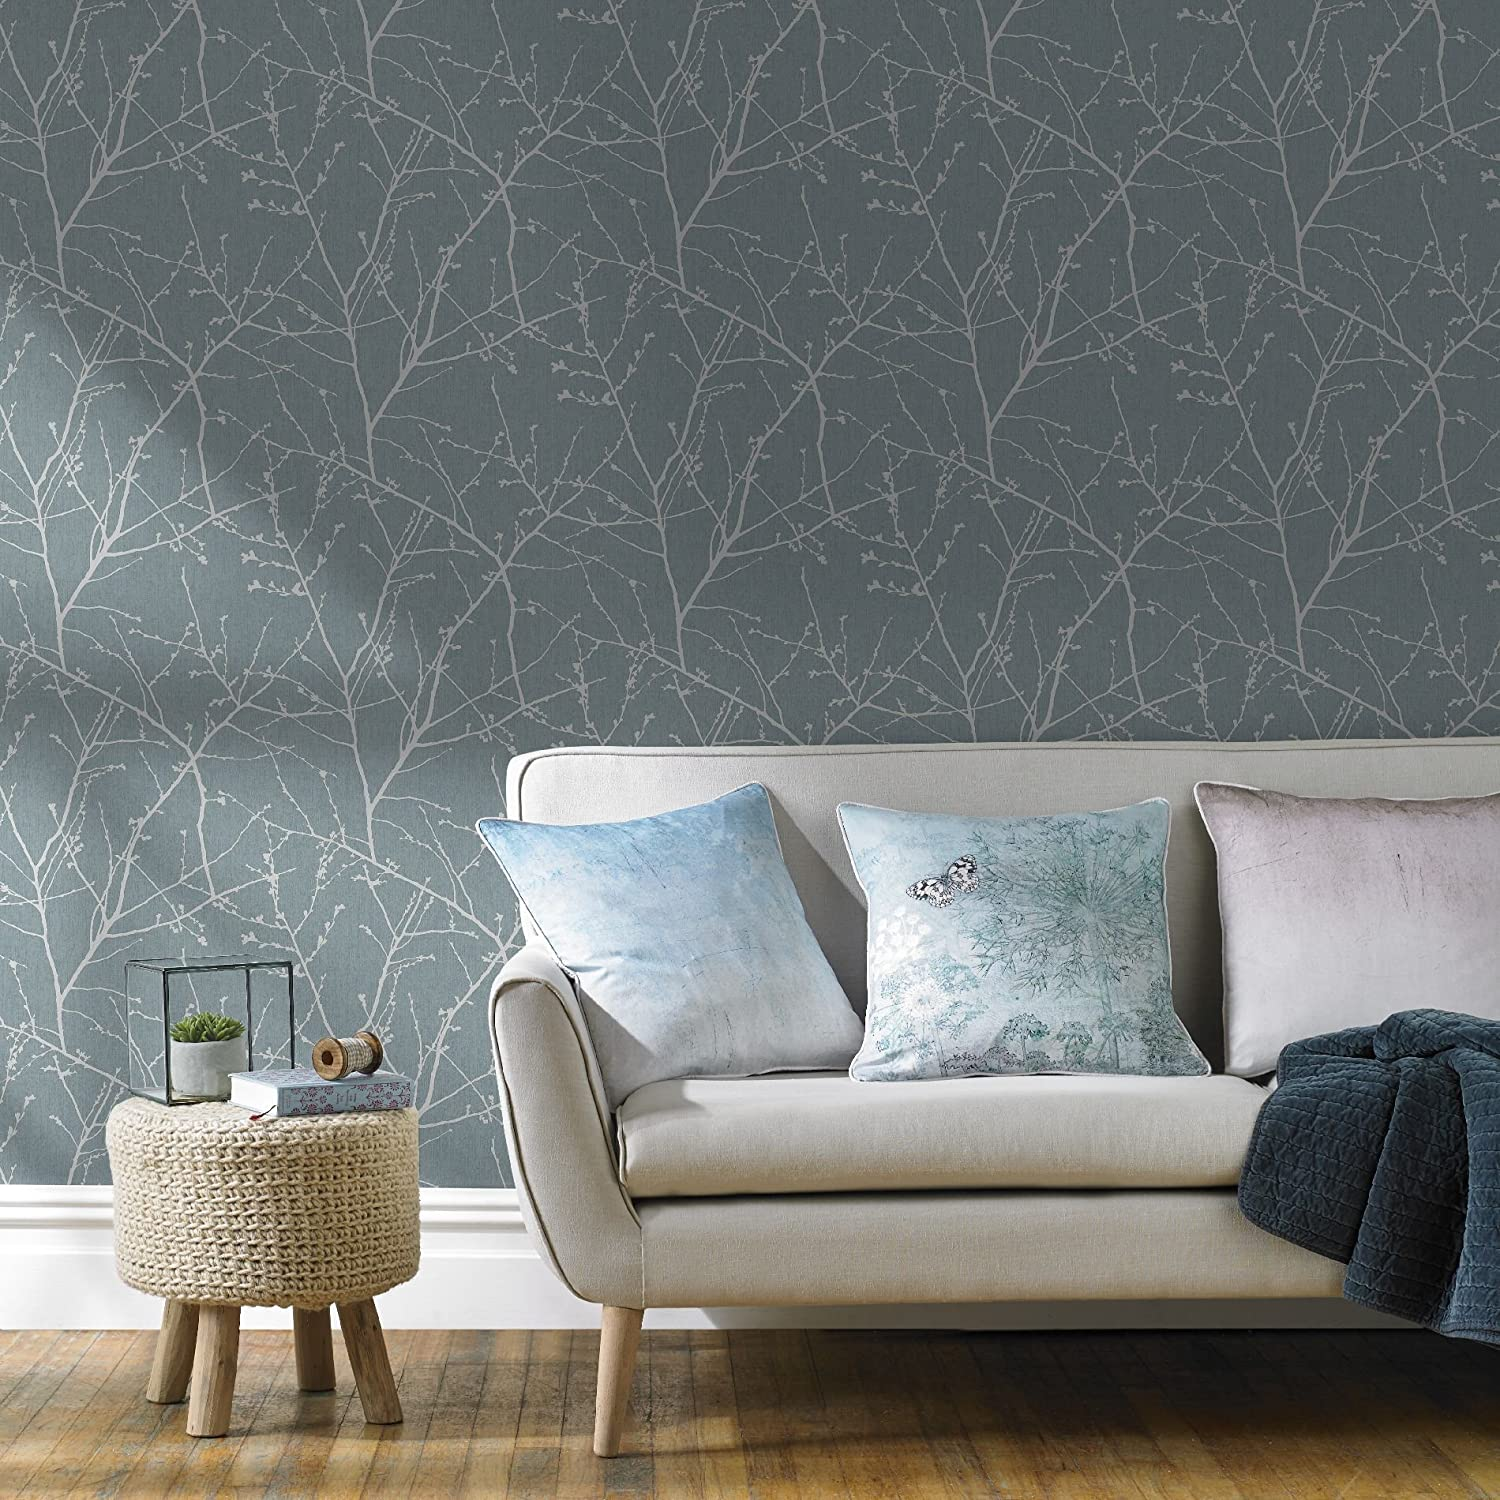 Graham & Brown 33-270 Innocence Duck Egg Wallpaper